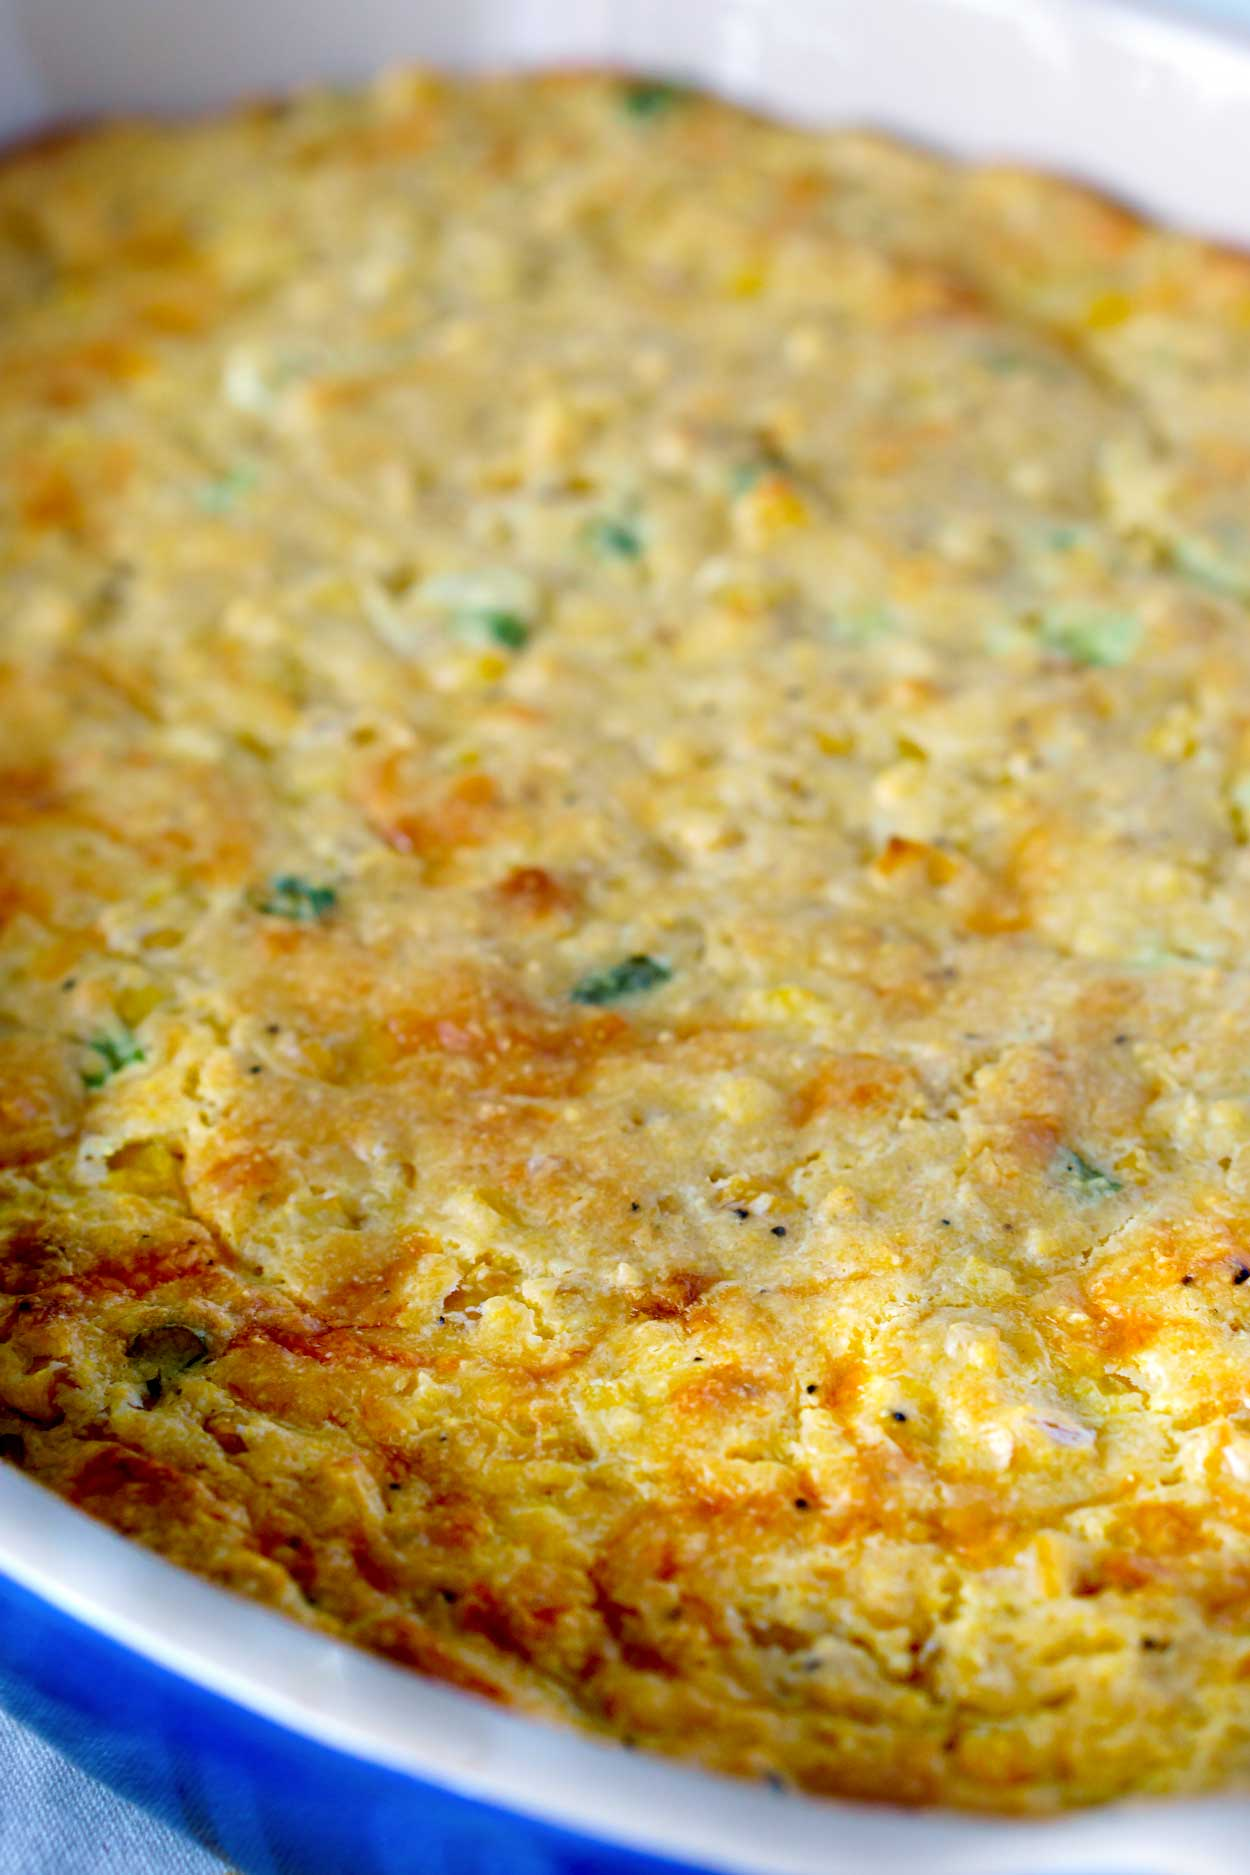 Cornbread Casserole with Cheese can Scallions